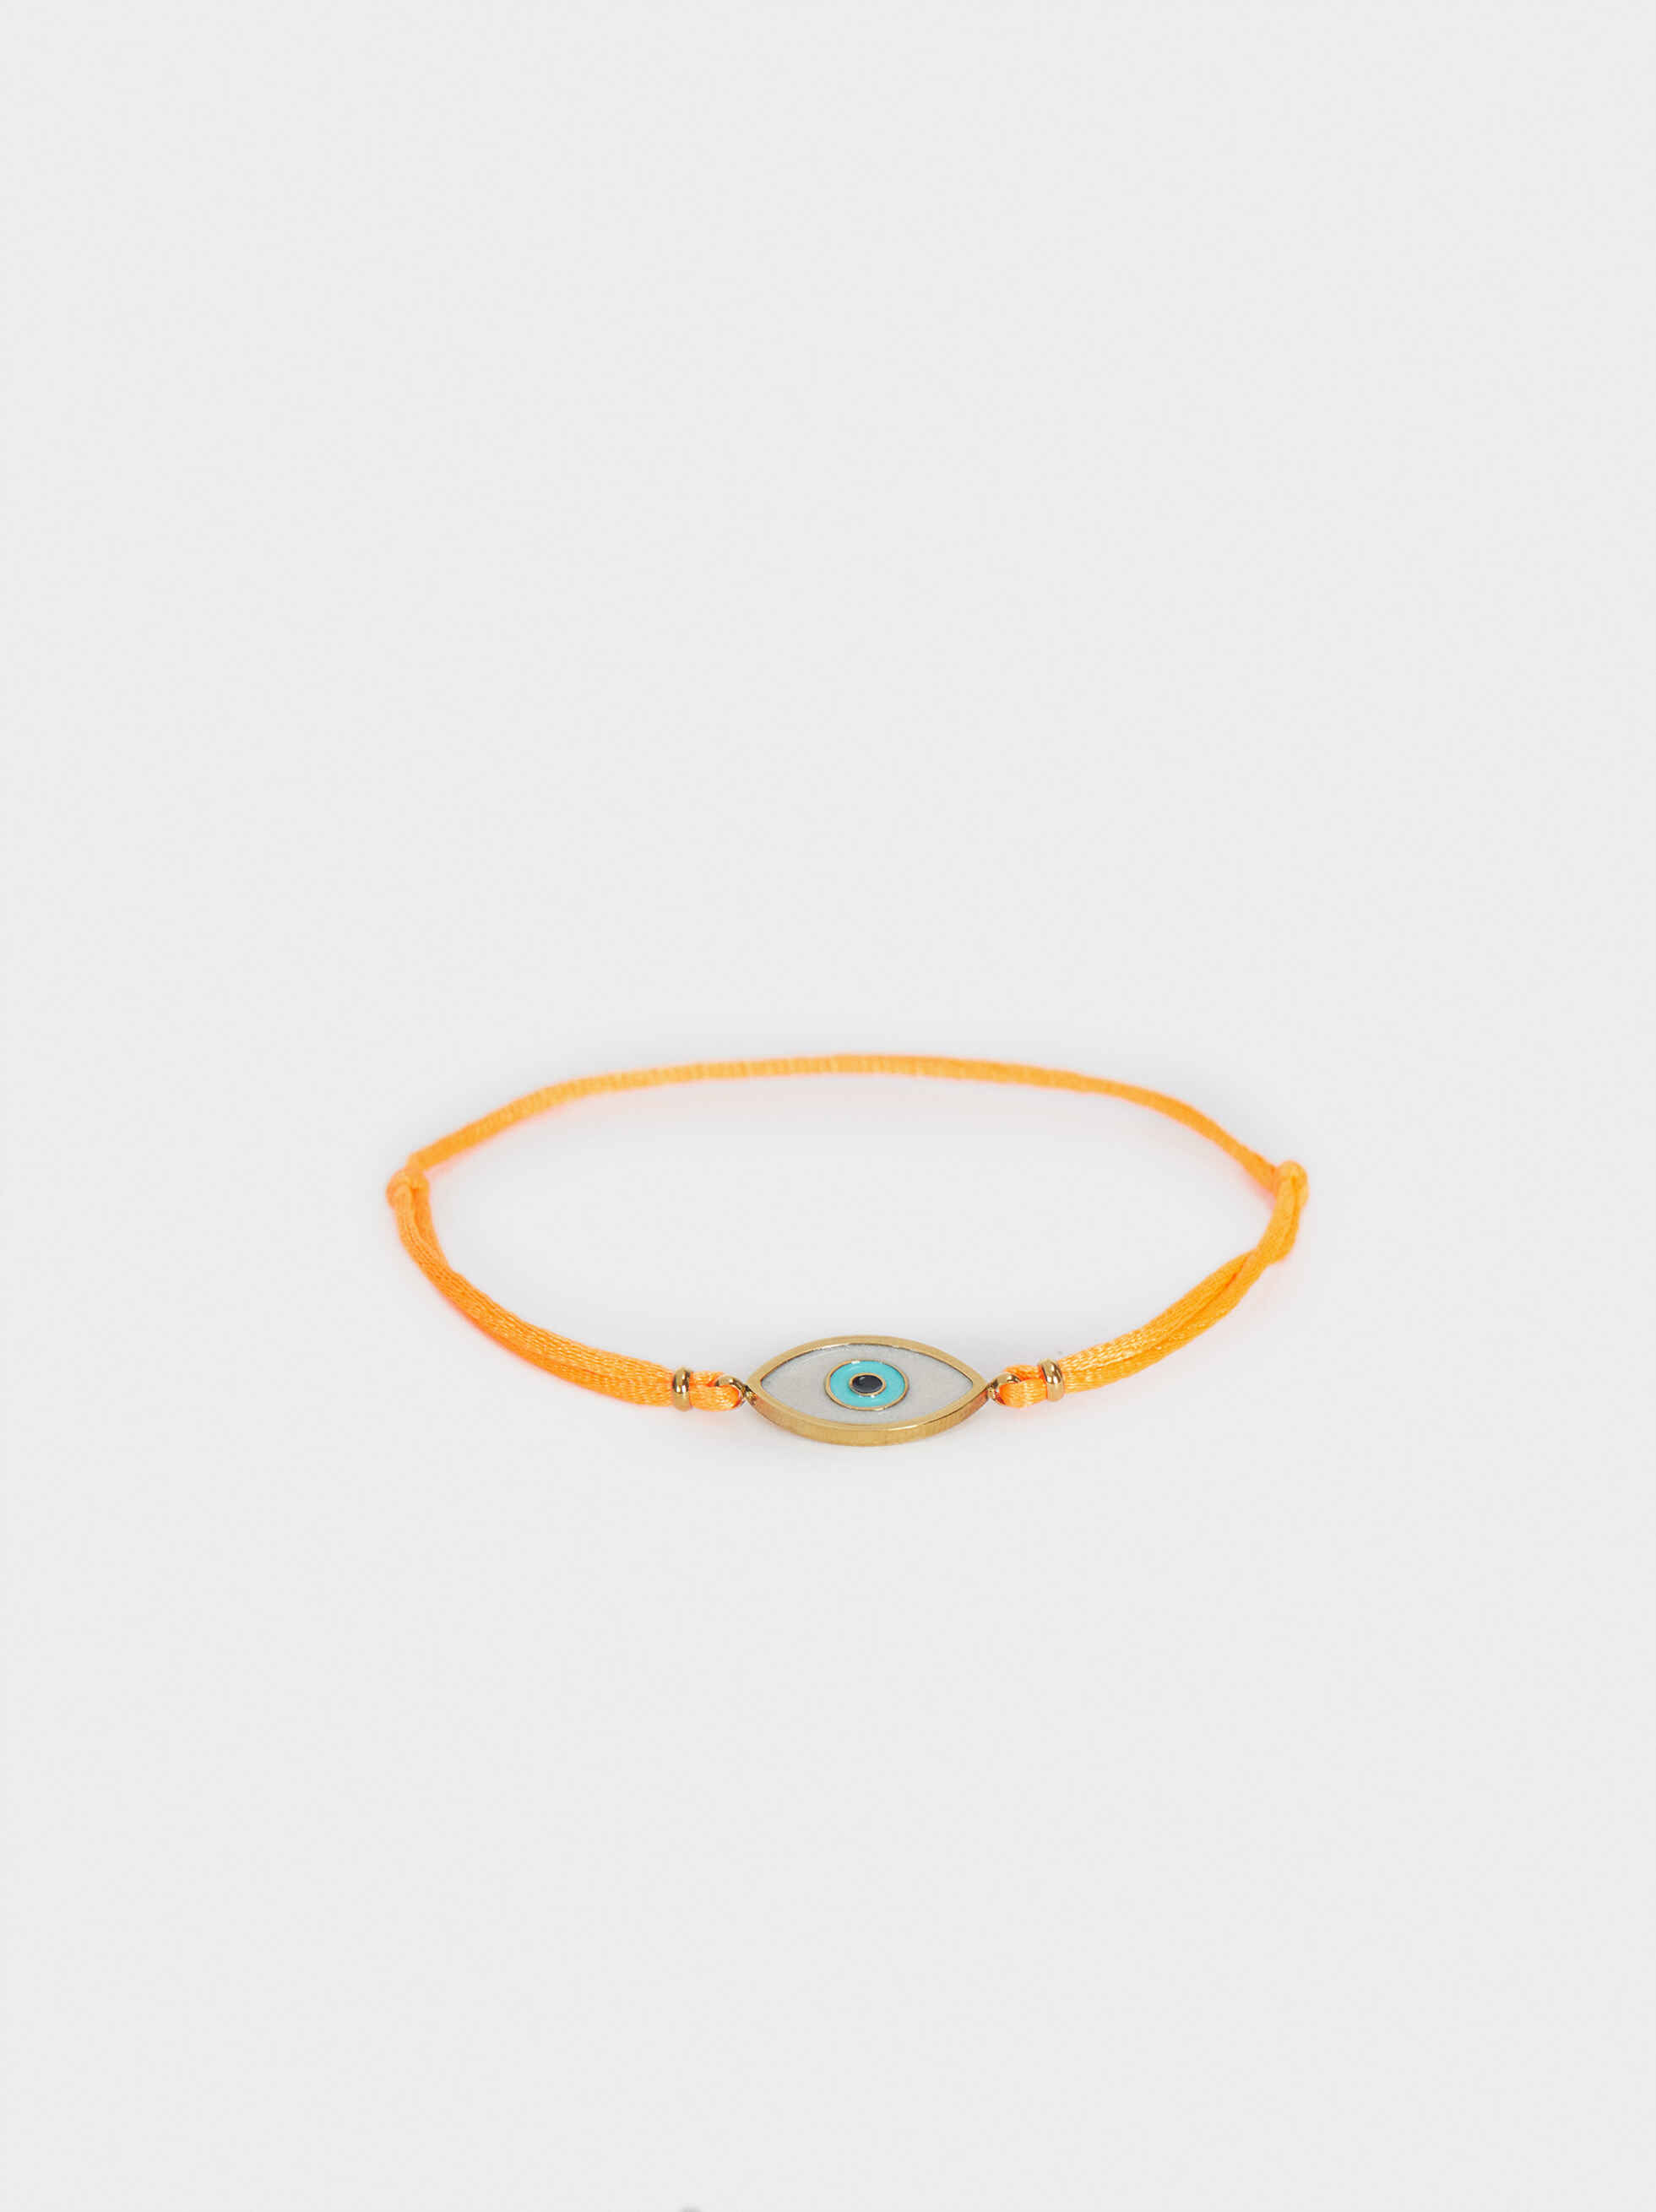 Adjustable Chain Bracelet With Eye Detail, Orange, hi-res